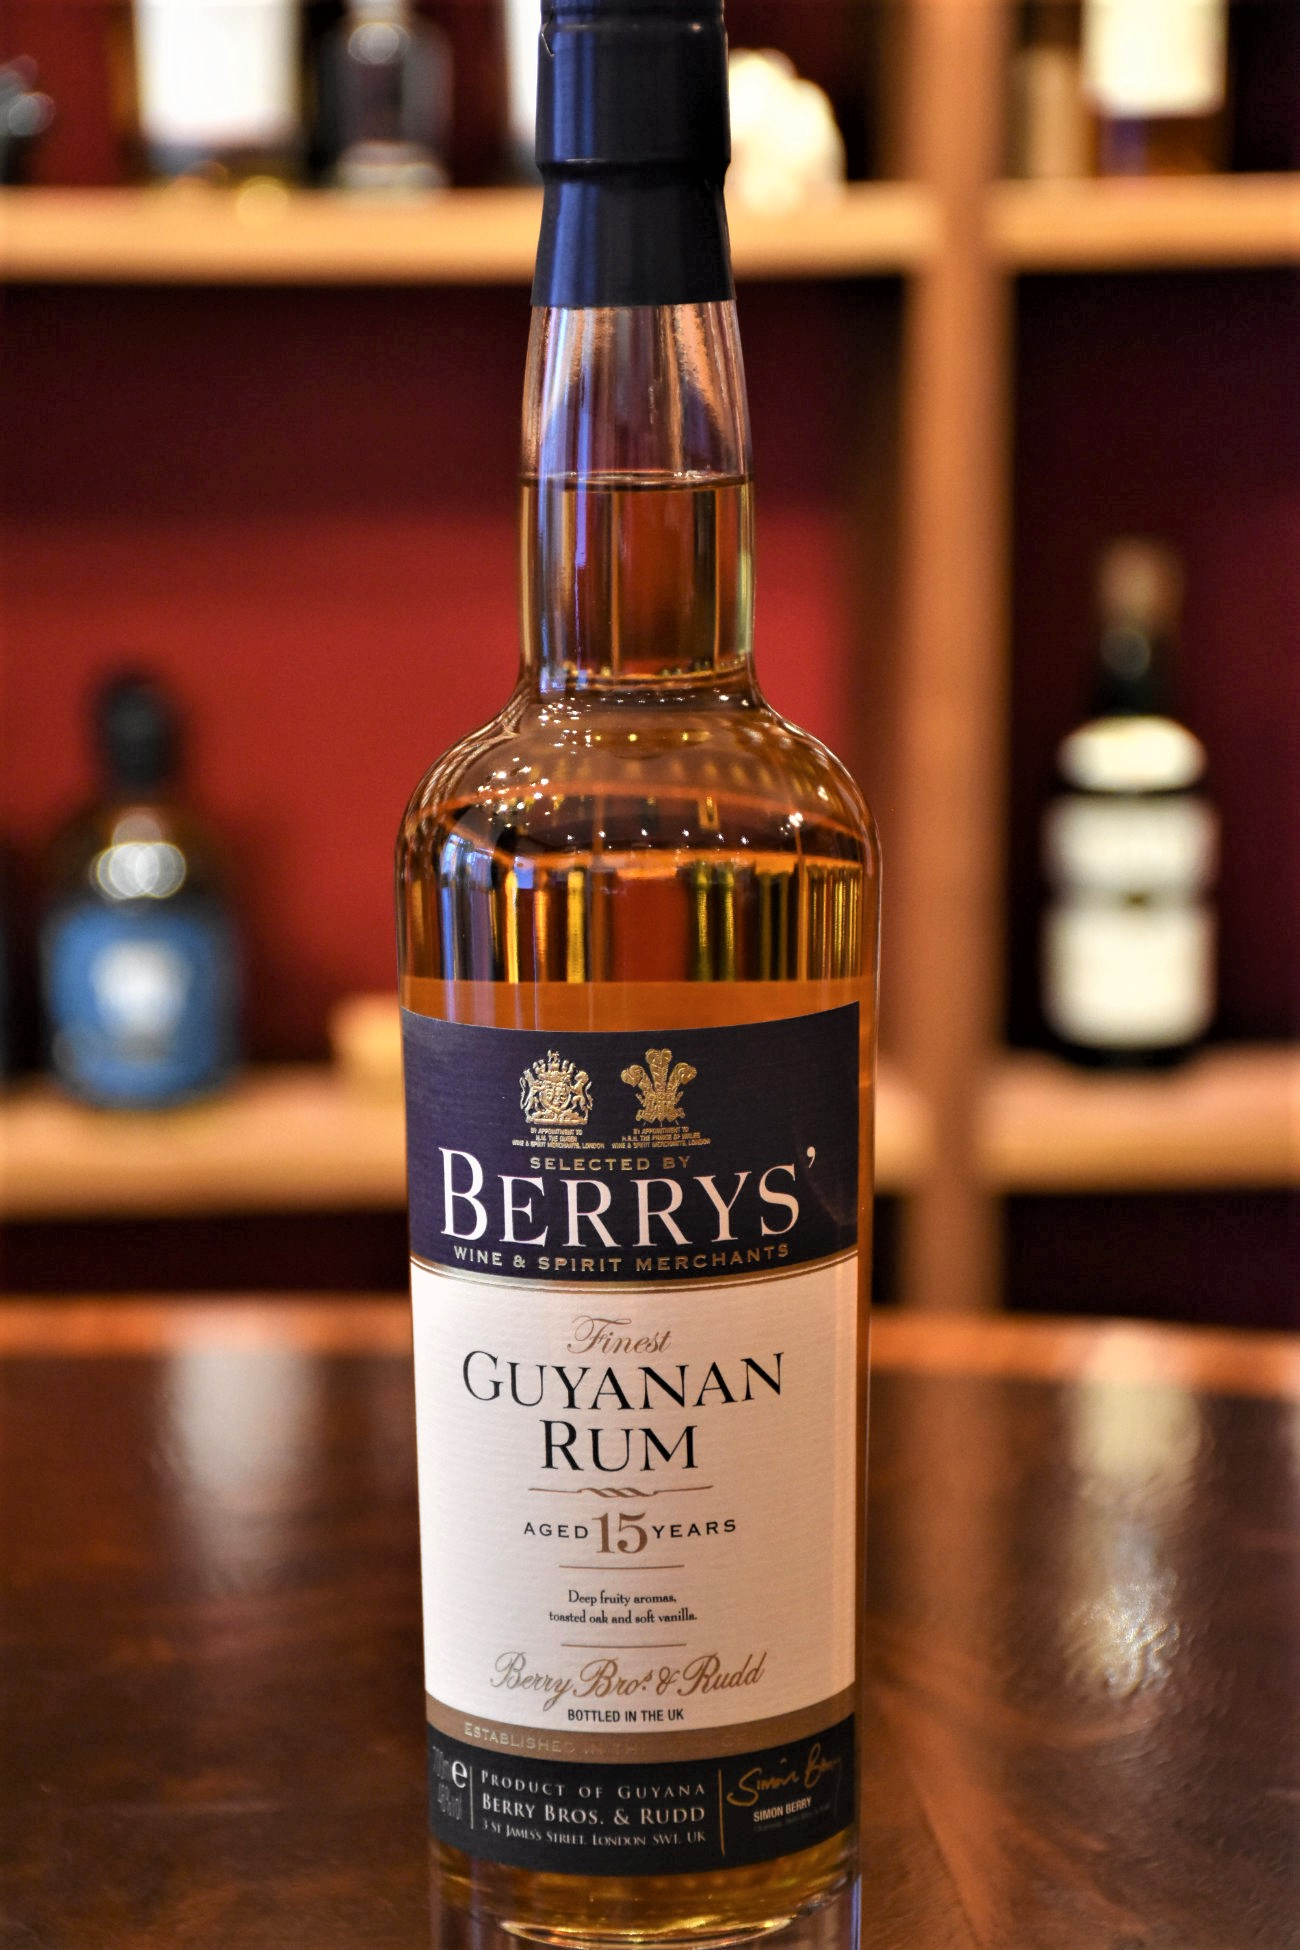 Berry´s Guyanan Rum 15 y.o., 46% Alc.Vol., Berry Bros.&Rudd